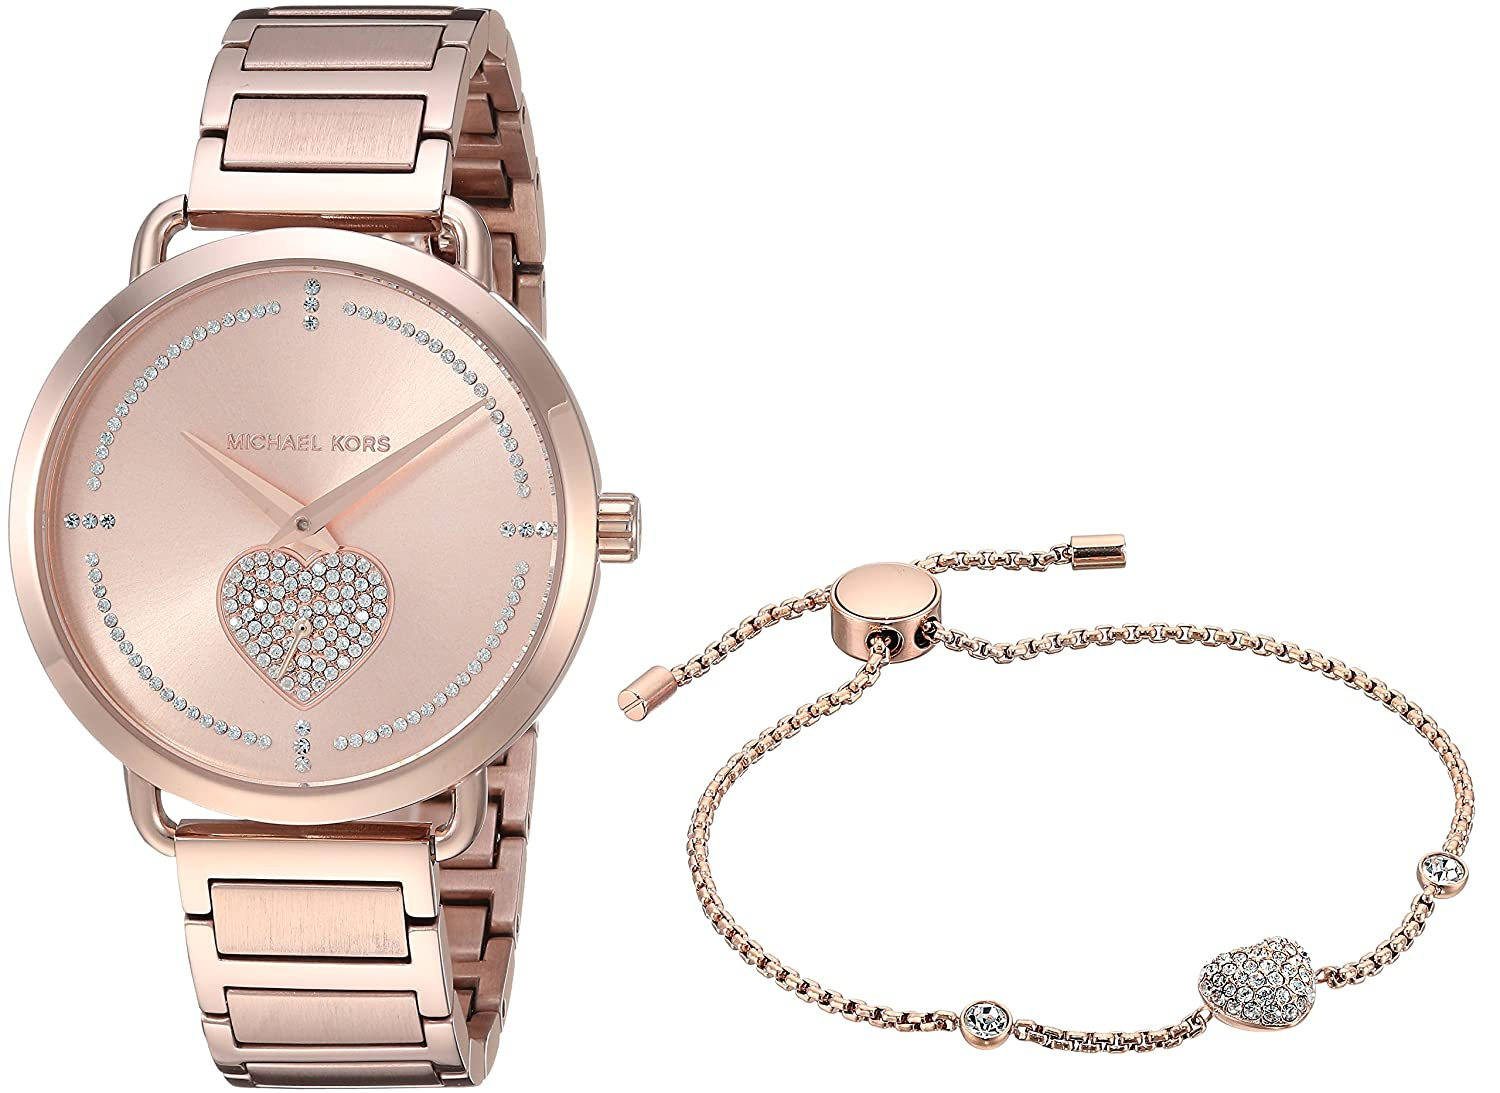 Amazon.com: Michael Kors Womens Portia Analog Display Analog Quartz Rose Gold Watch MK3827: Michael Kors: Watches